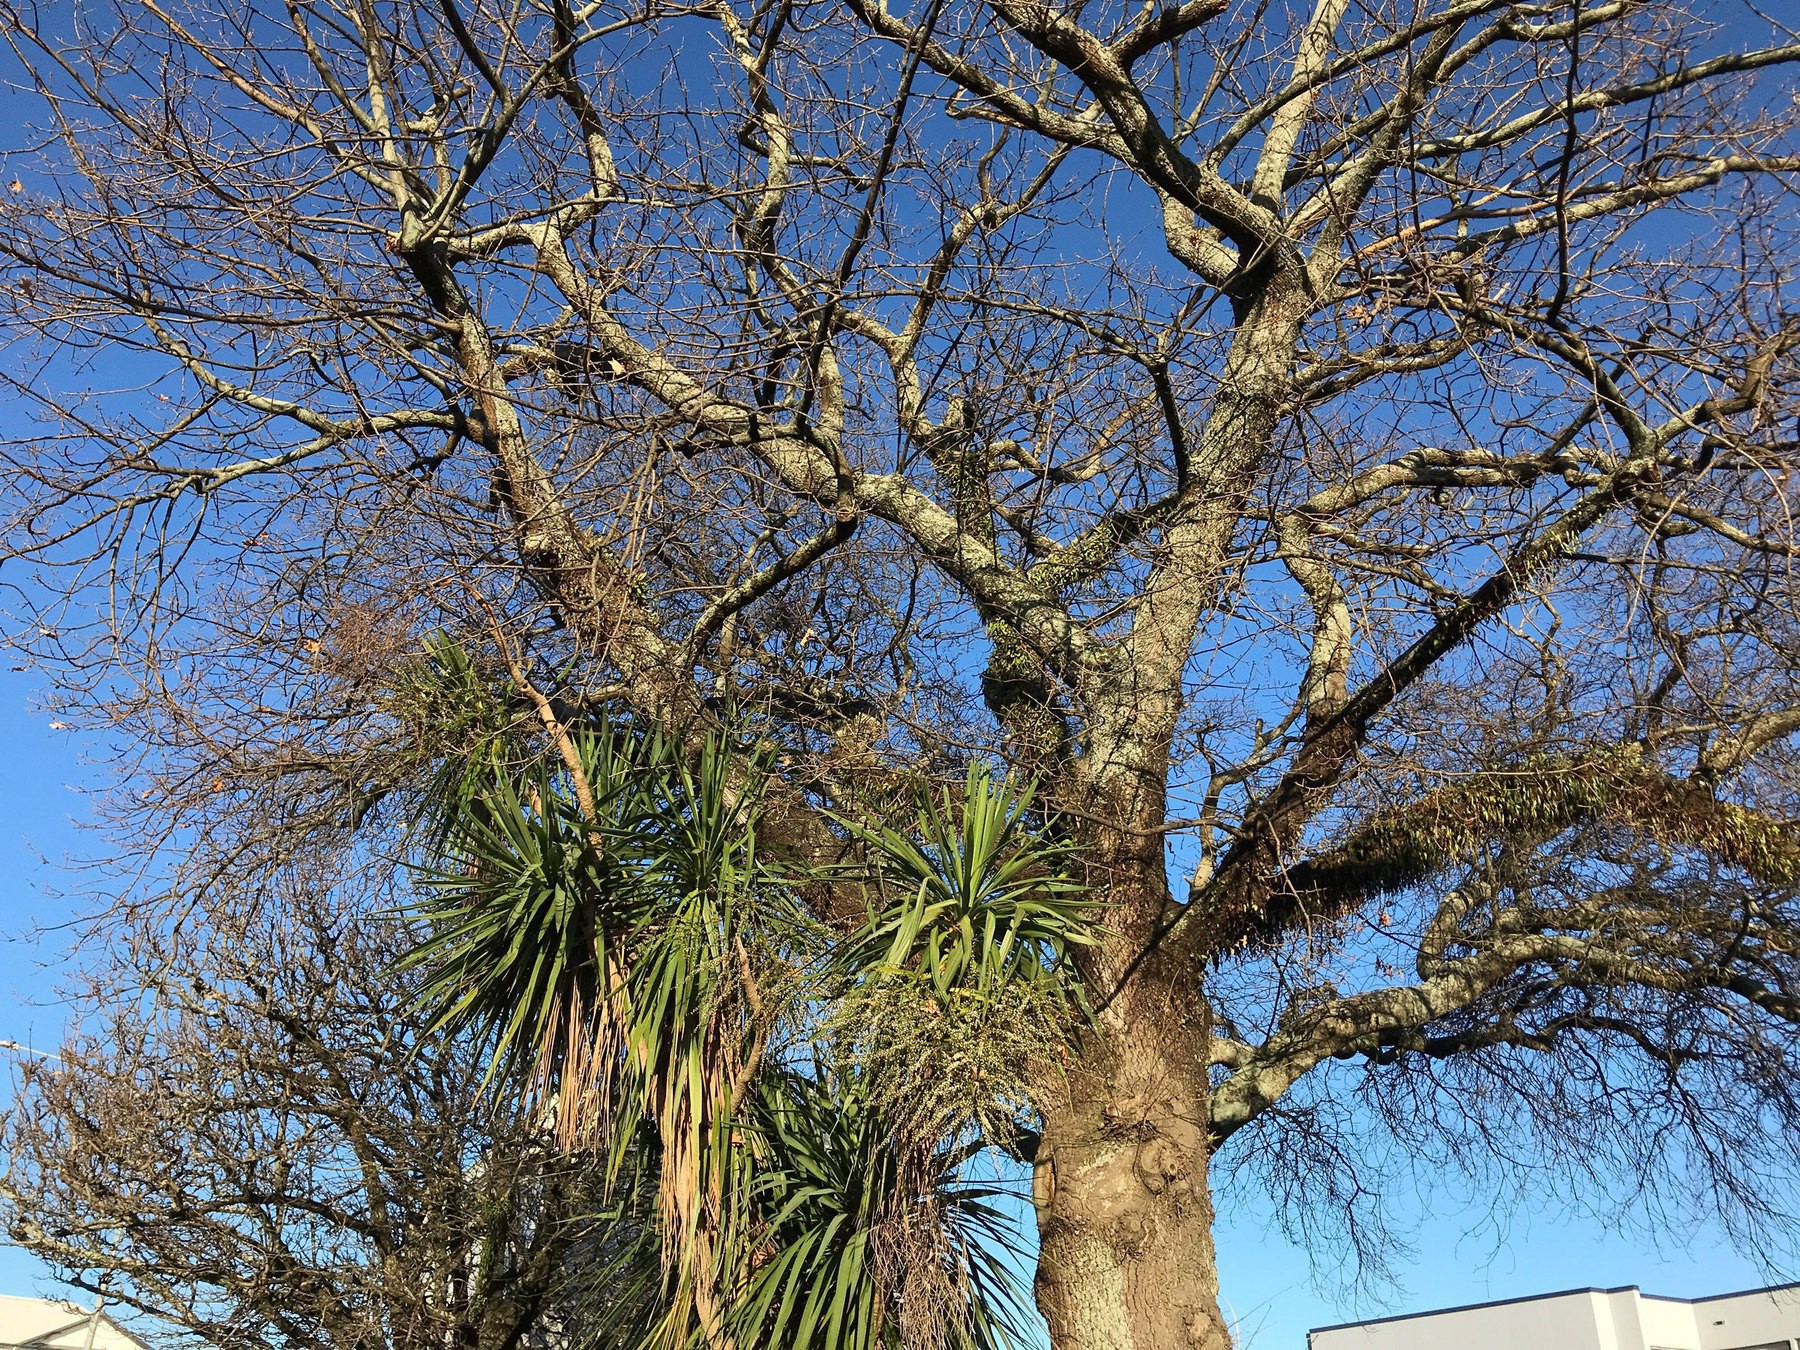 Green leaved cabbage tree and leafless winter branches of a large exotic tree.